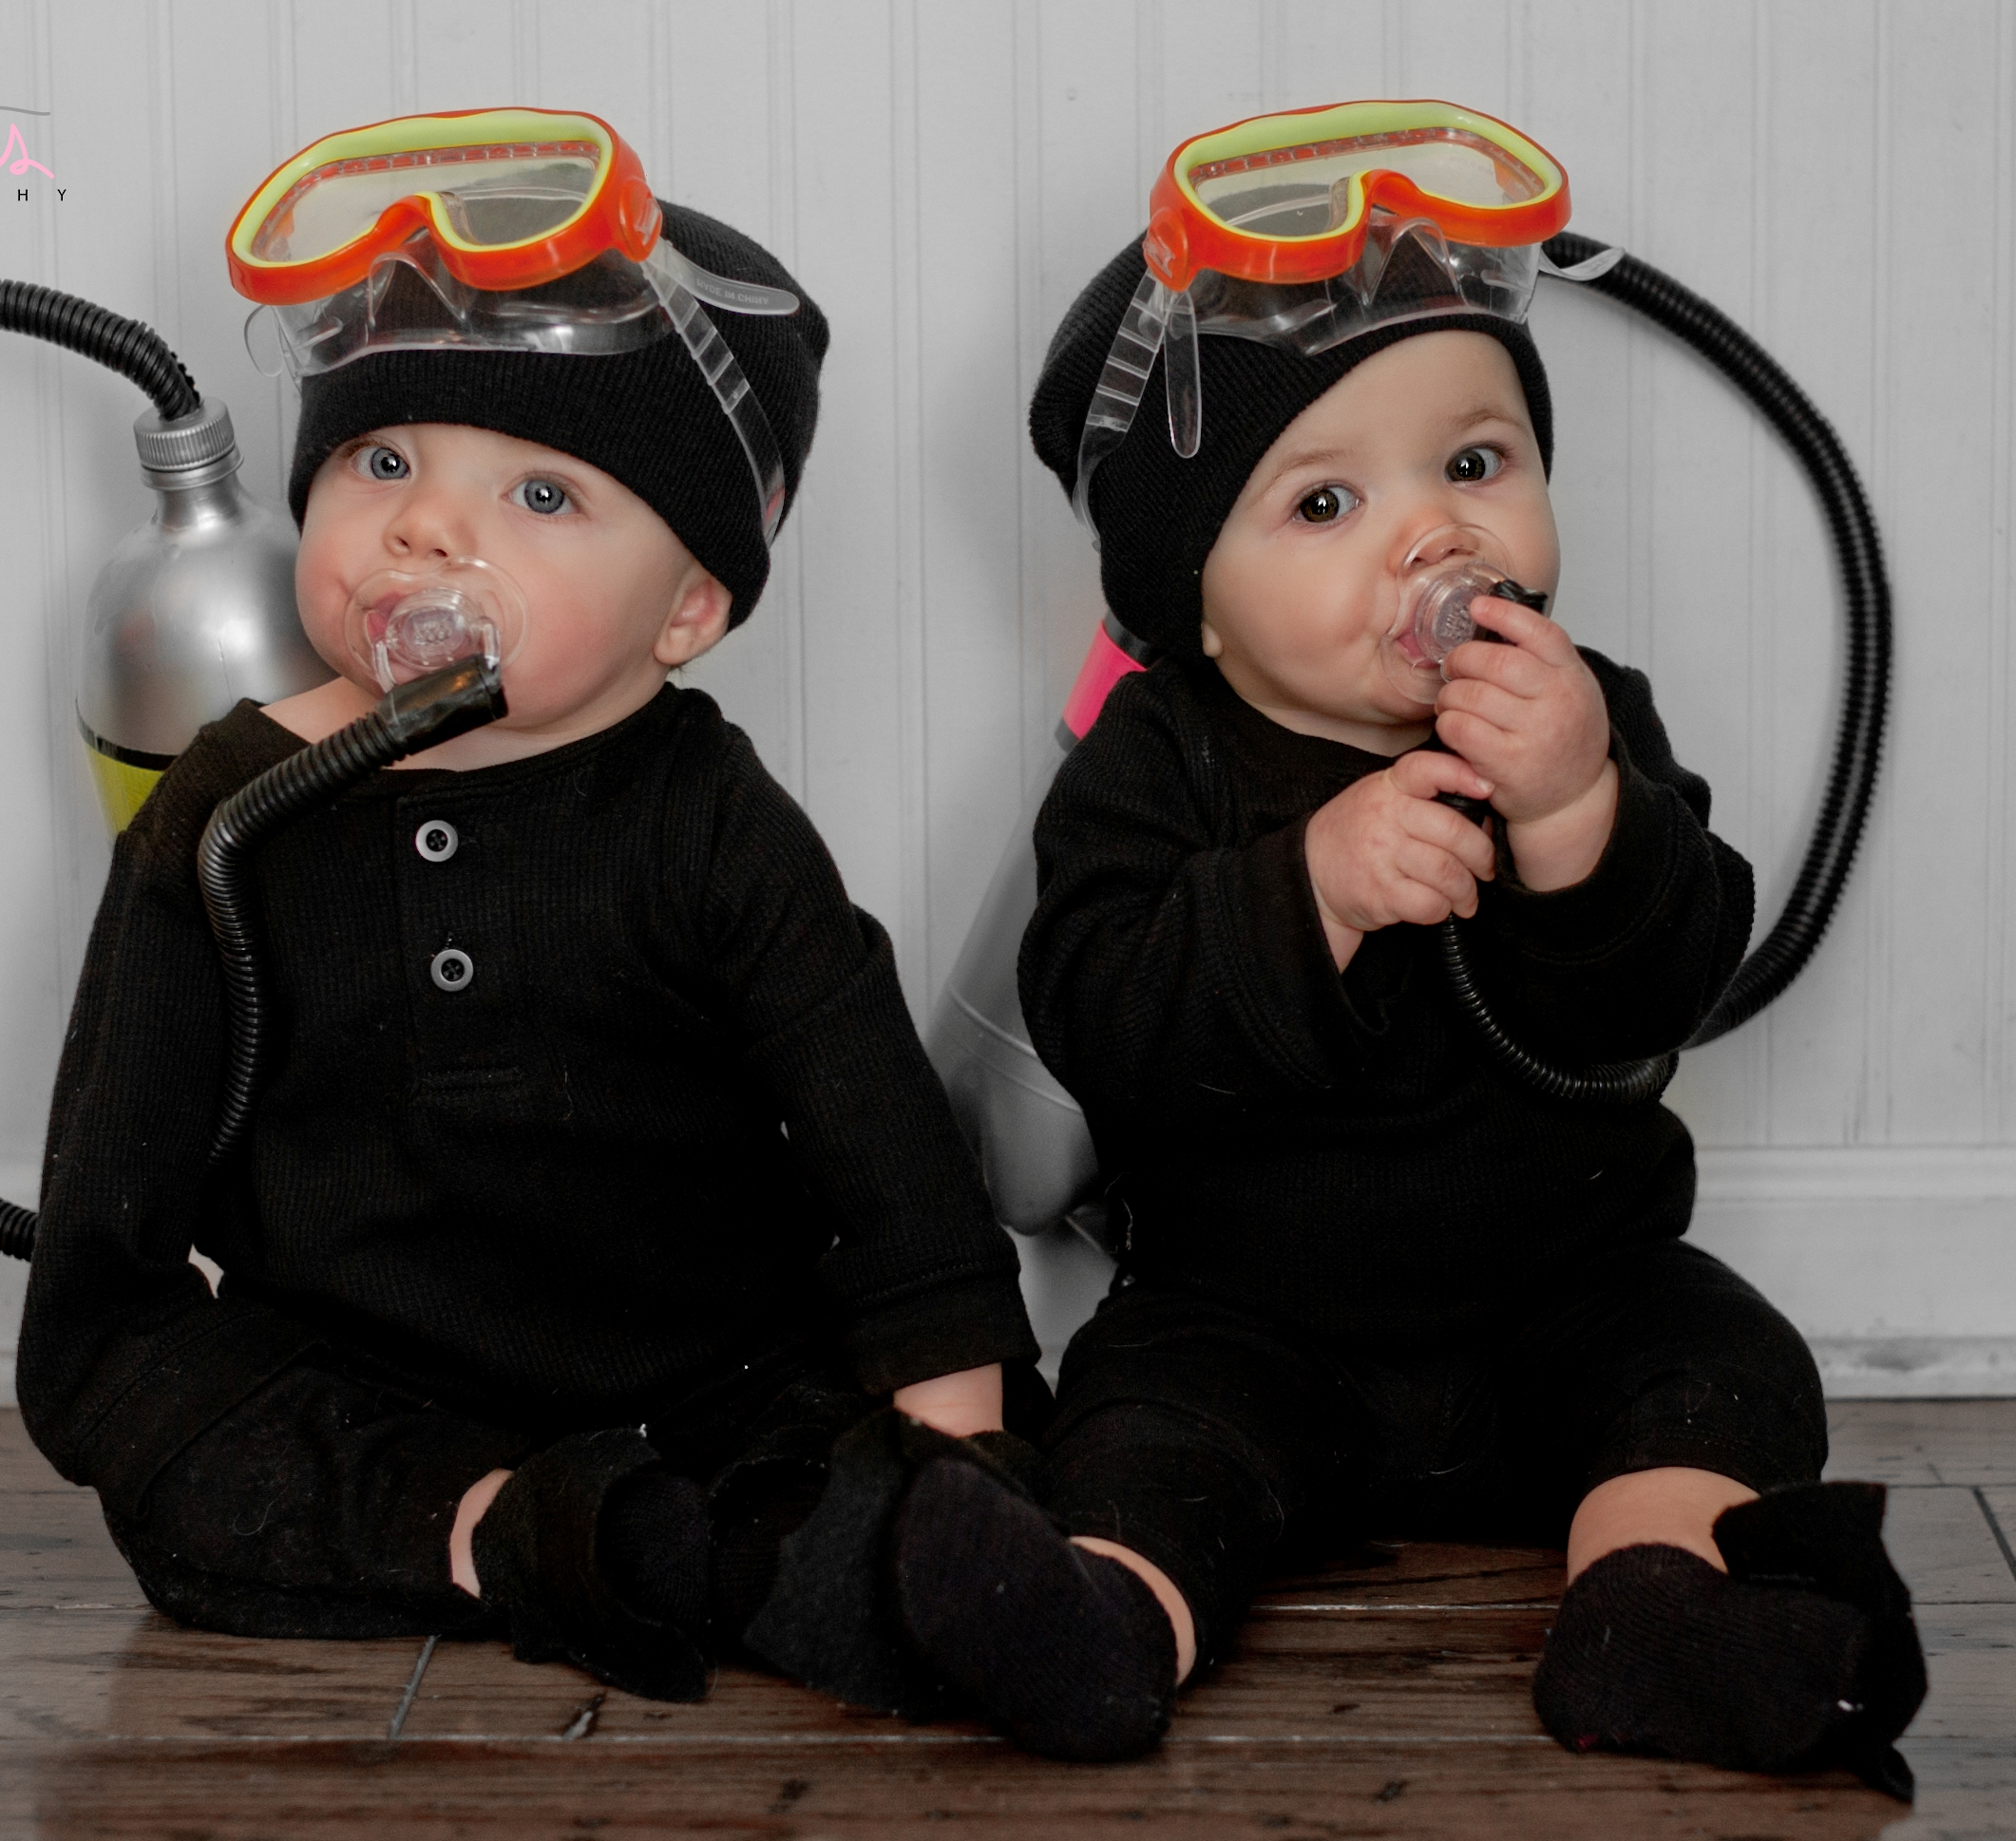 scuba divers cute halloween costumes for baby twins